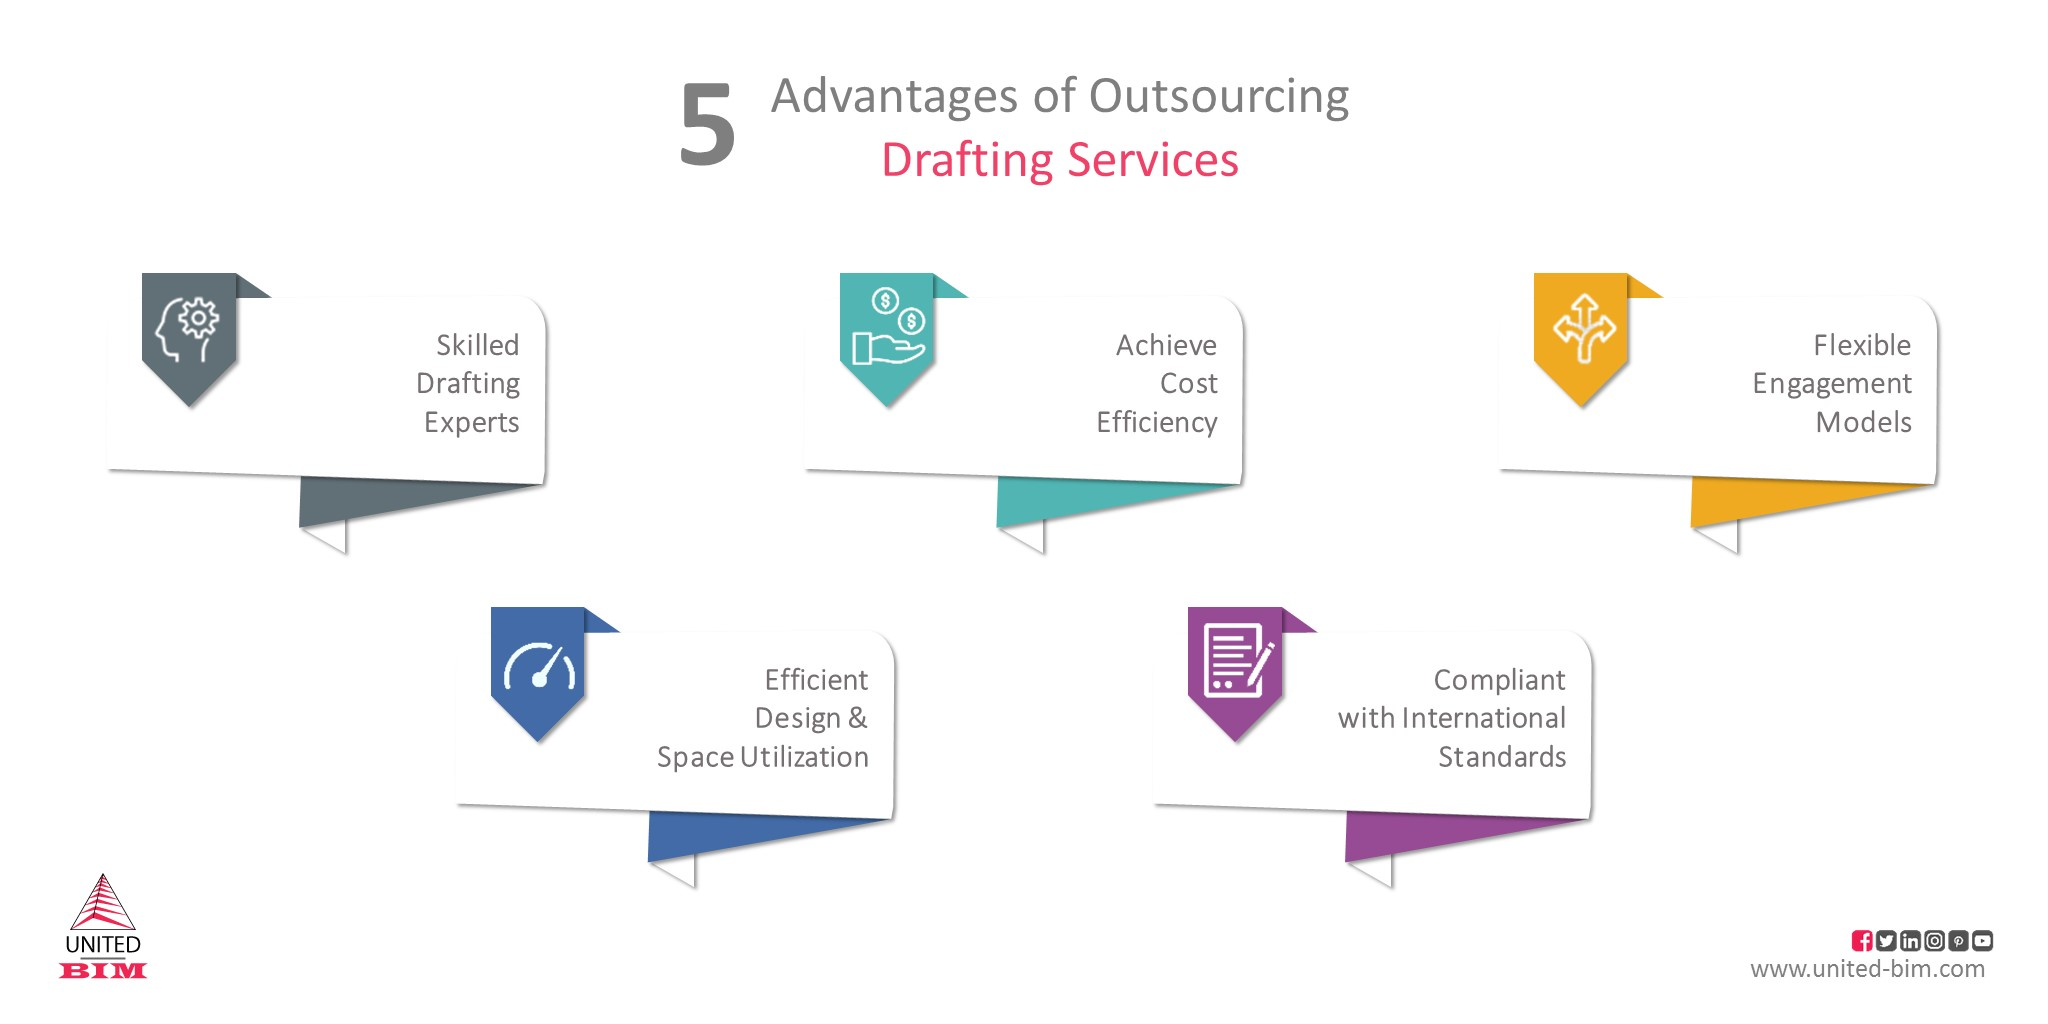 5 Advantages Outsourcing Architectural Drafting Services by United-BIM